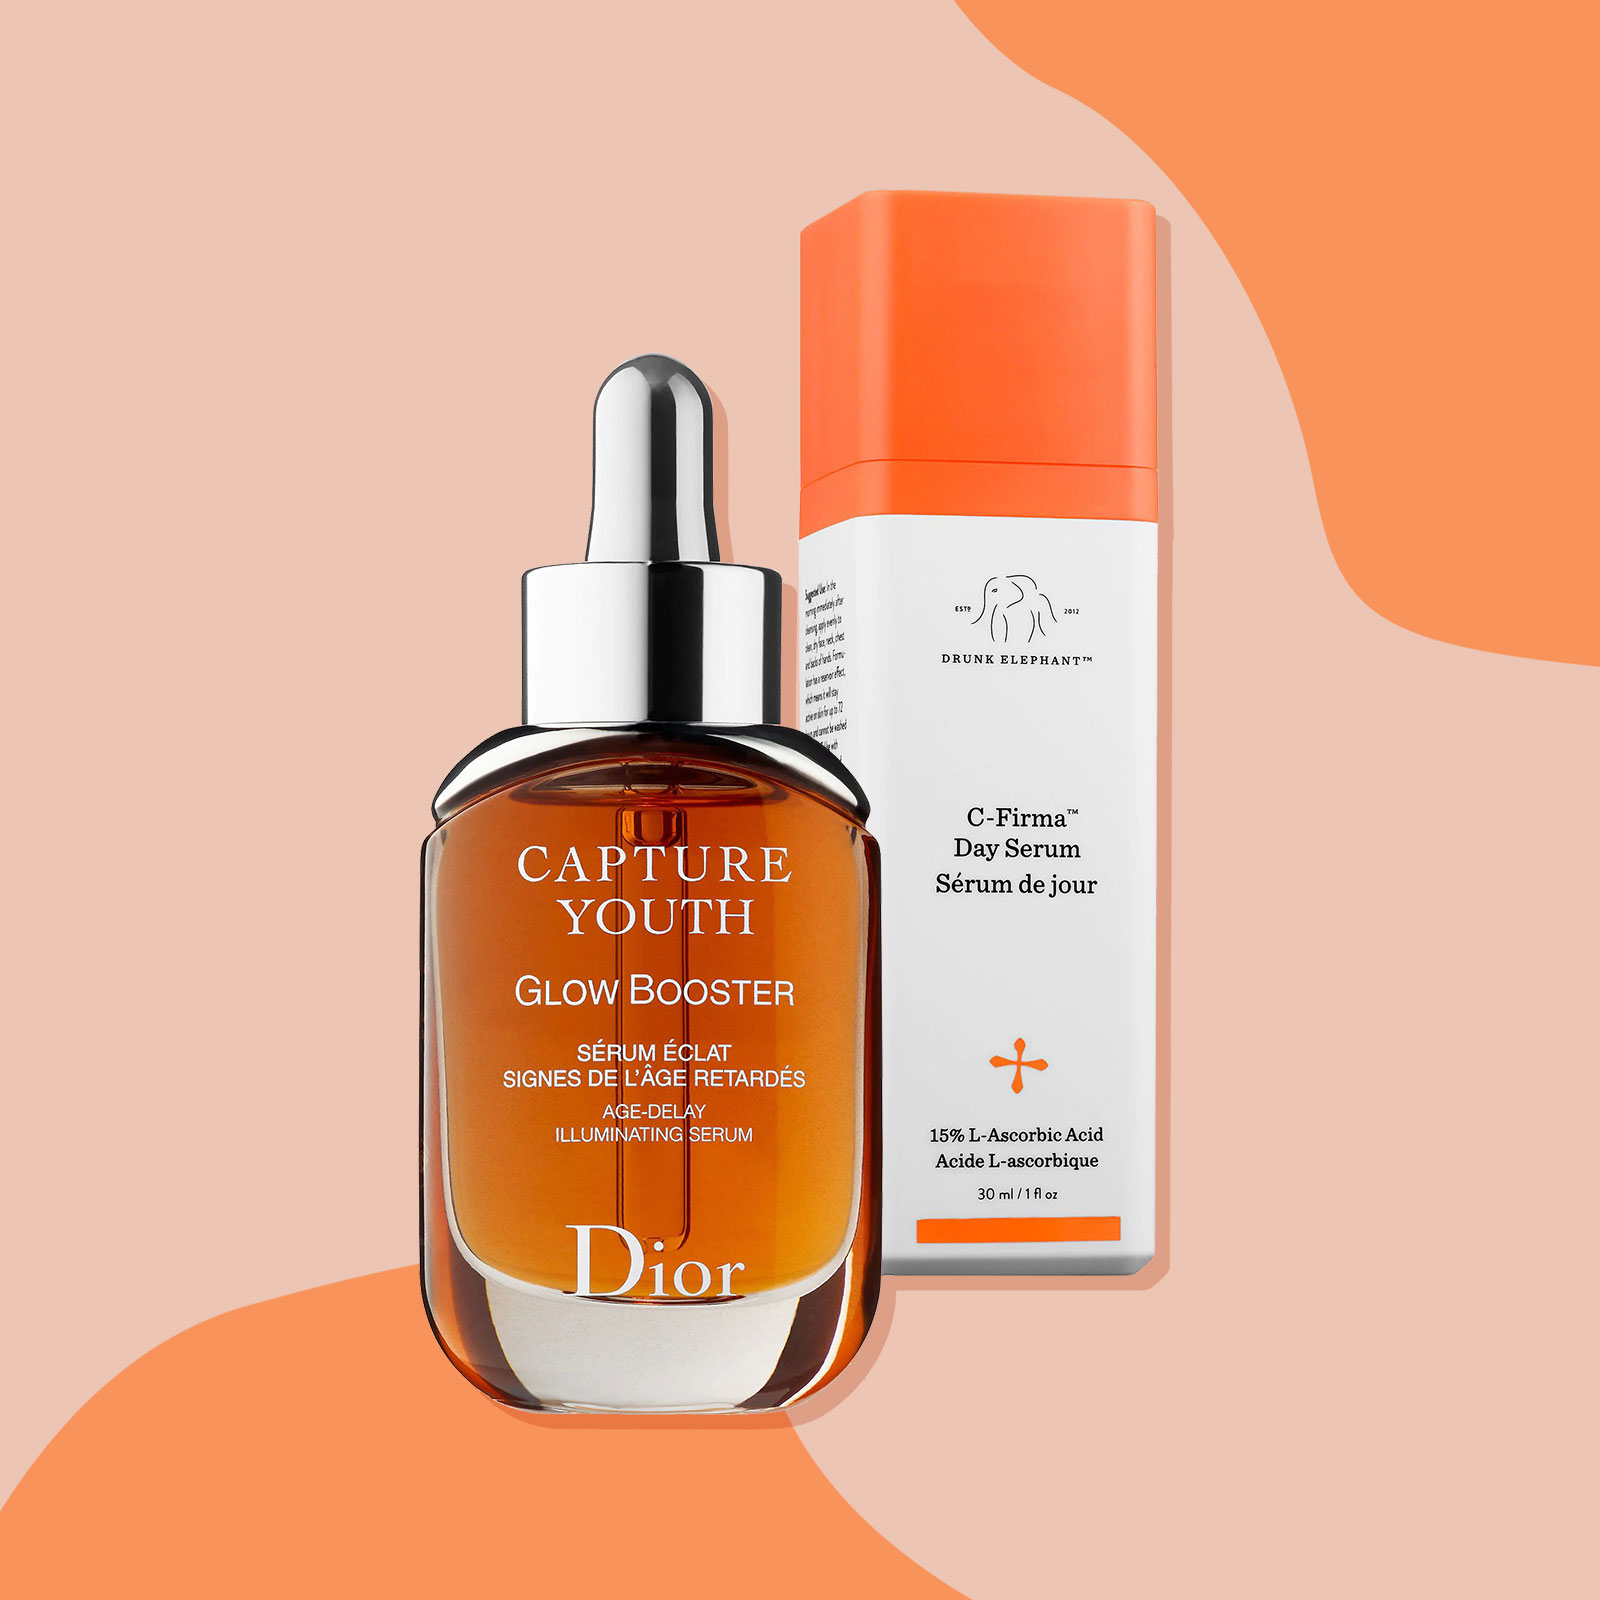 7 Vitamin C Serums That Could Transform Your Skin